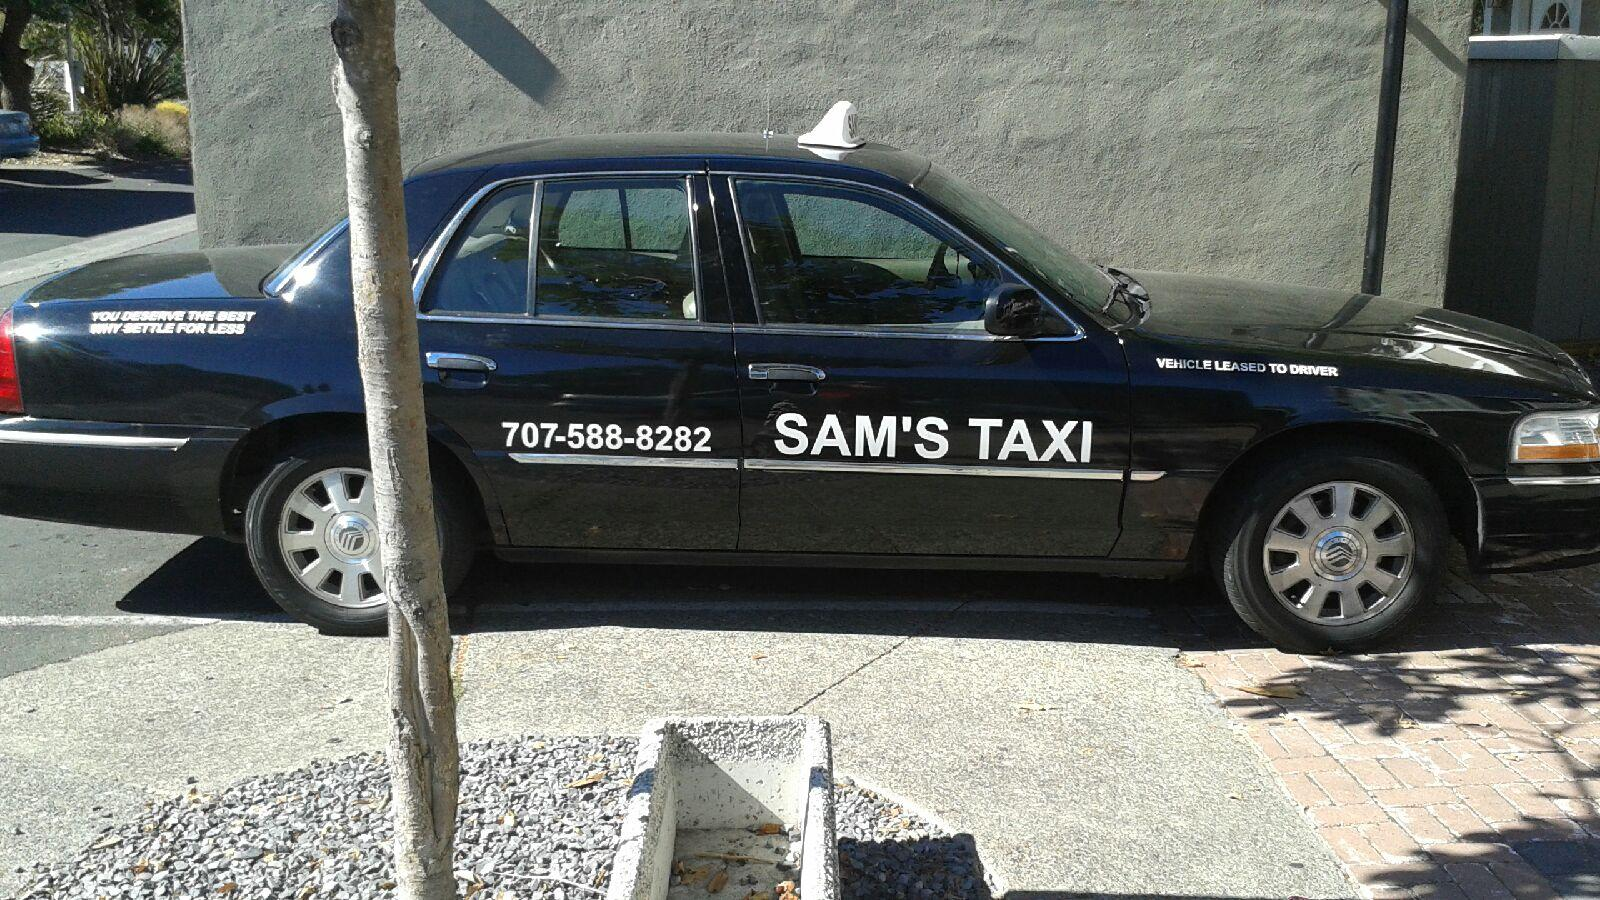 Sam's Taxi lettering